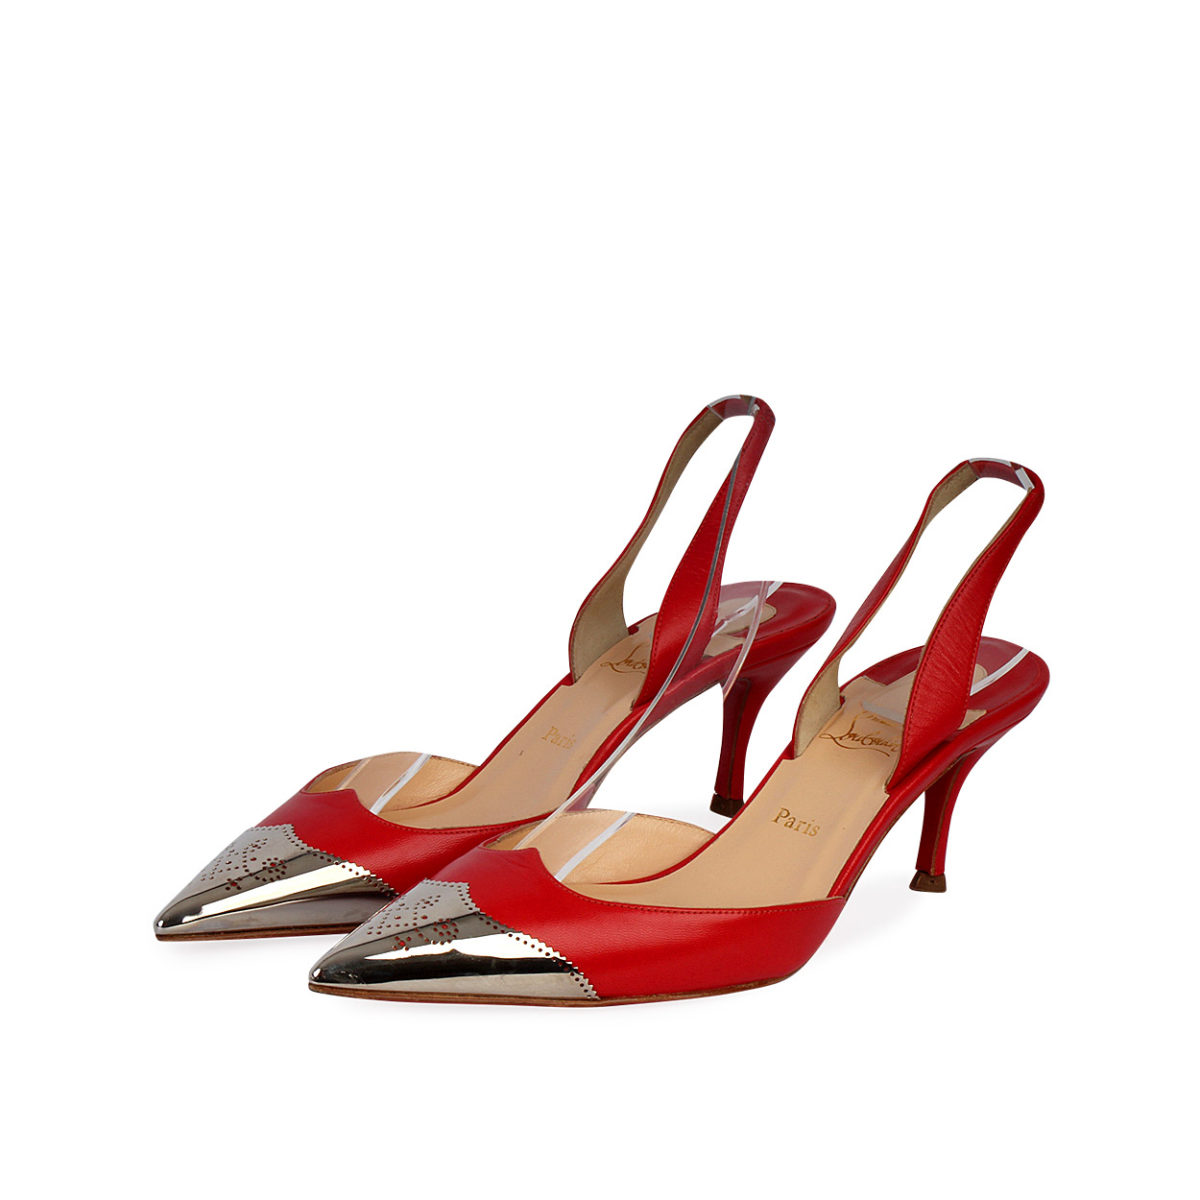 new concept 33cd4 798f5 CHRISTIAN LOUBOUTIN Leather Calamijane Metal Cap Toe Sandals Red - S: 35.5  (3)